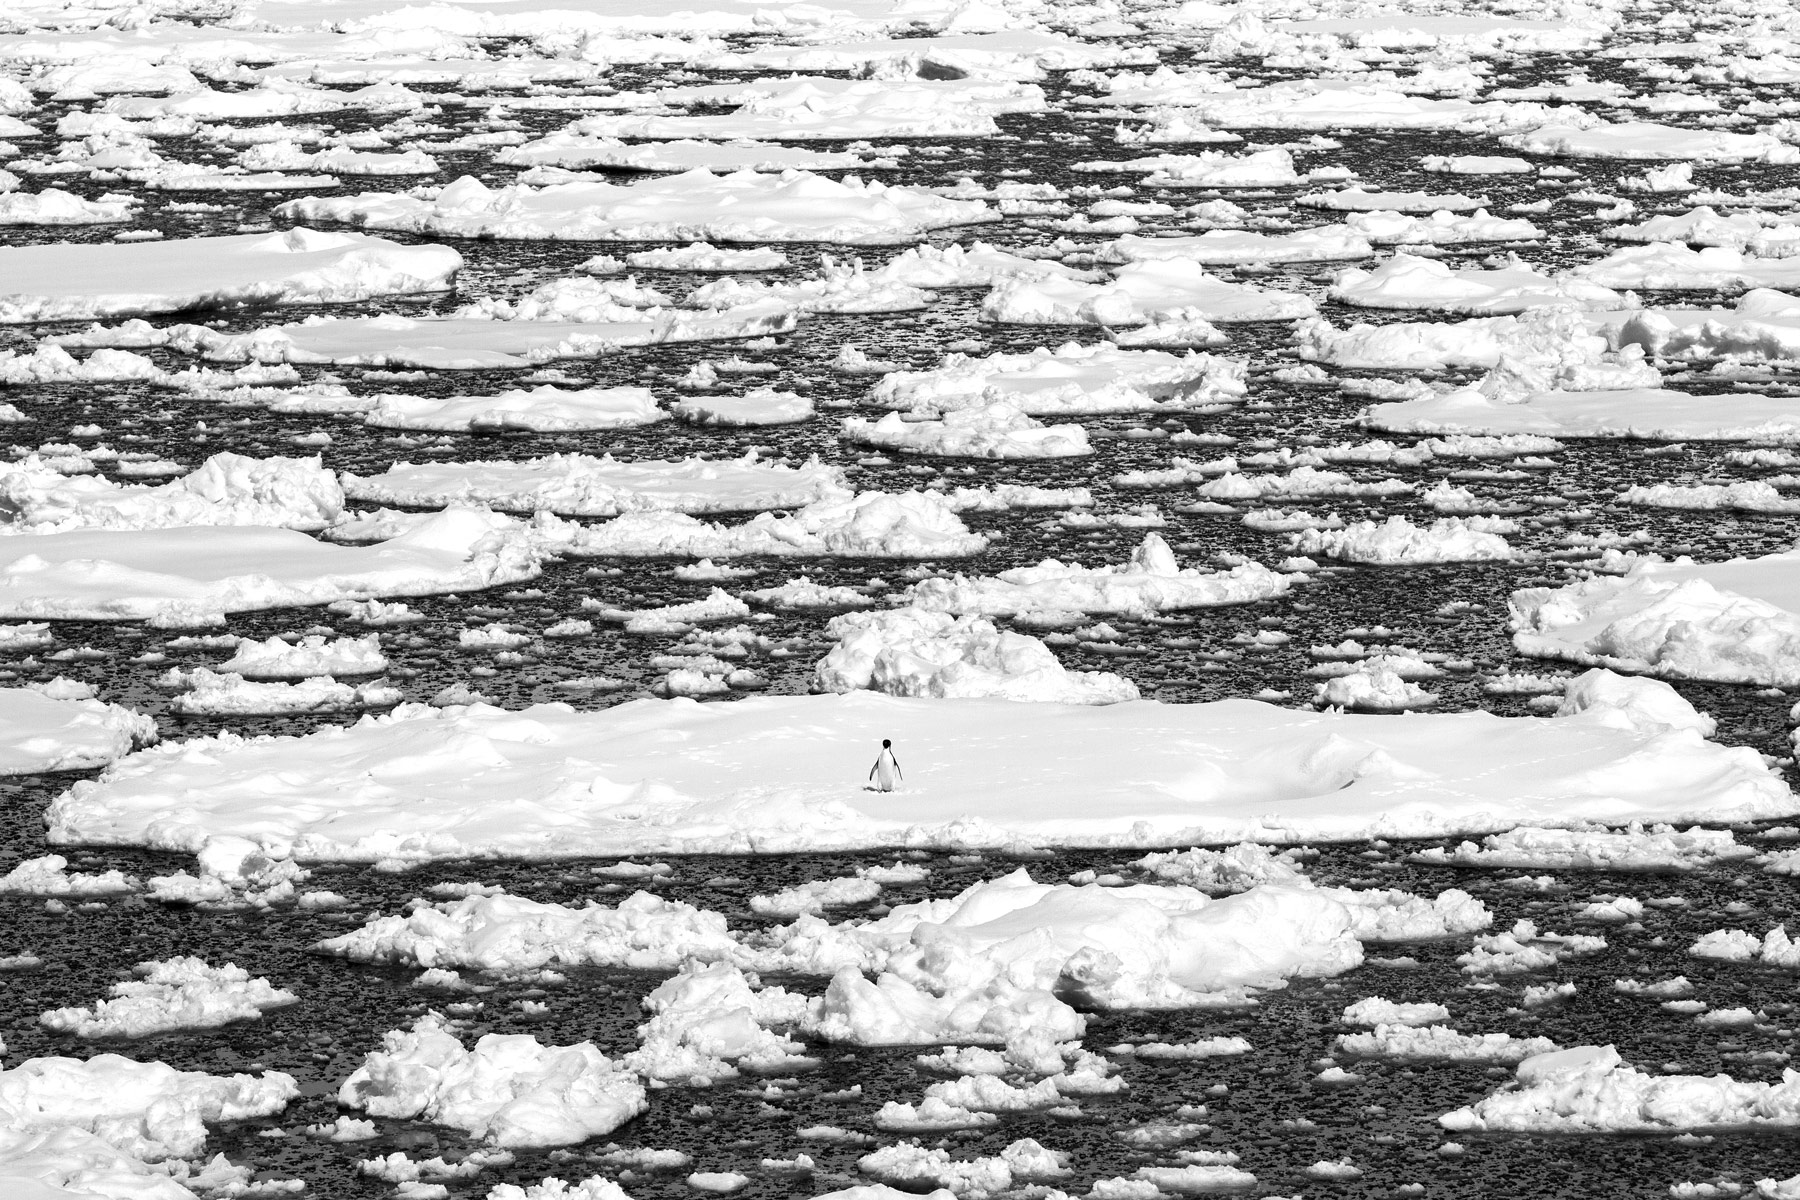 A lone penguin resting on sea ice in the Gerlache Strait, Antarctica